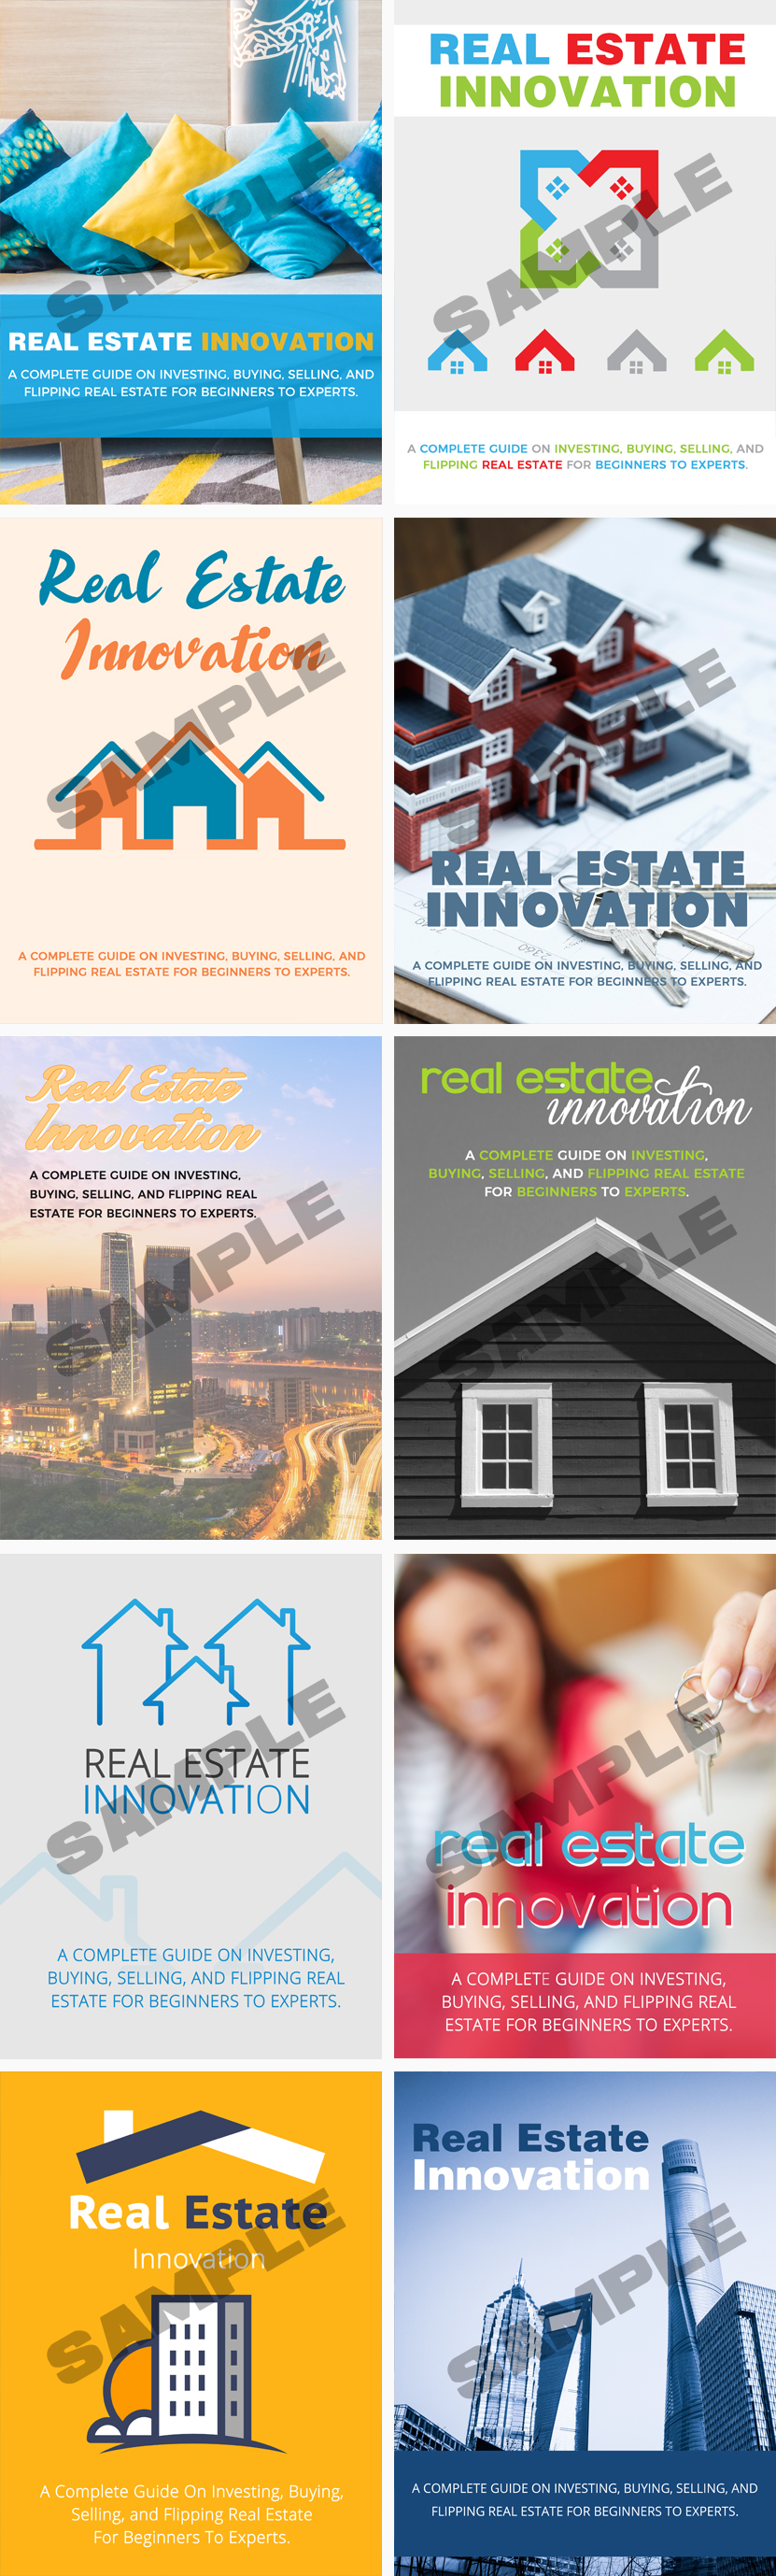 Real Estate Innovation Unique Top Quality eCovers